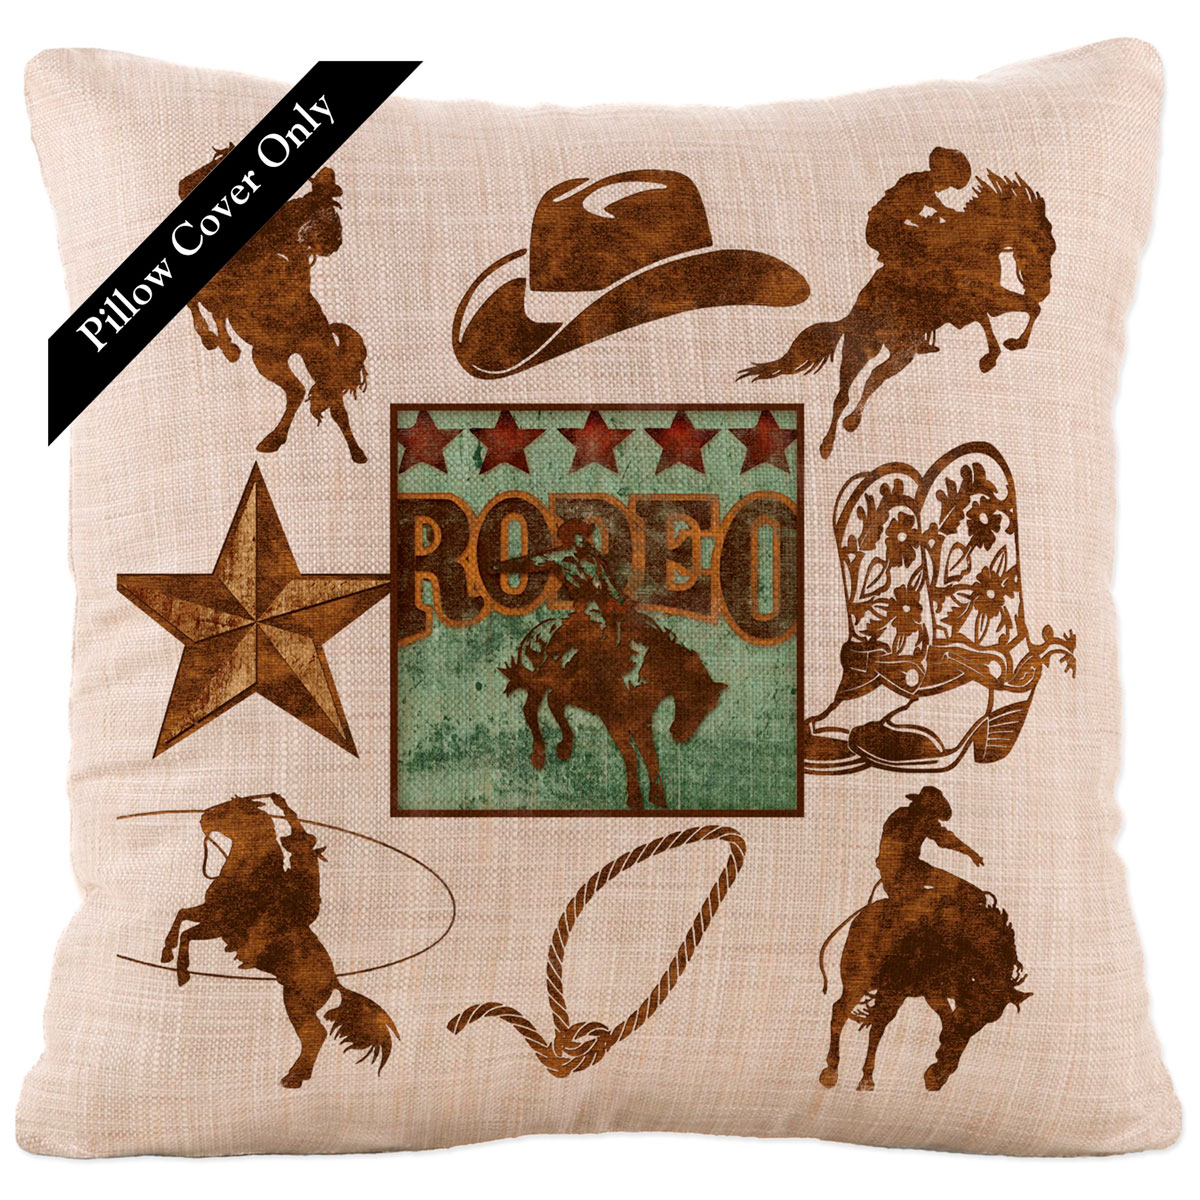 Rodeo Icon Icons Pillow Cover